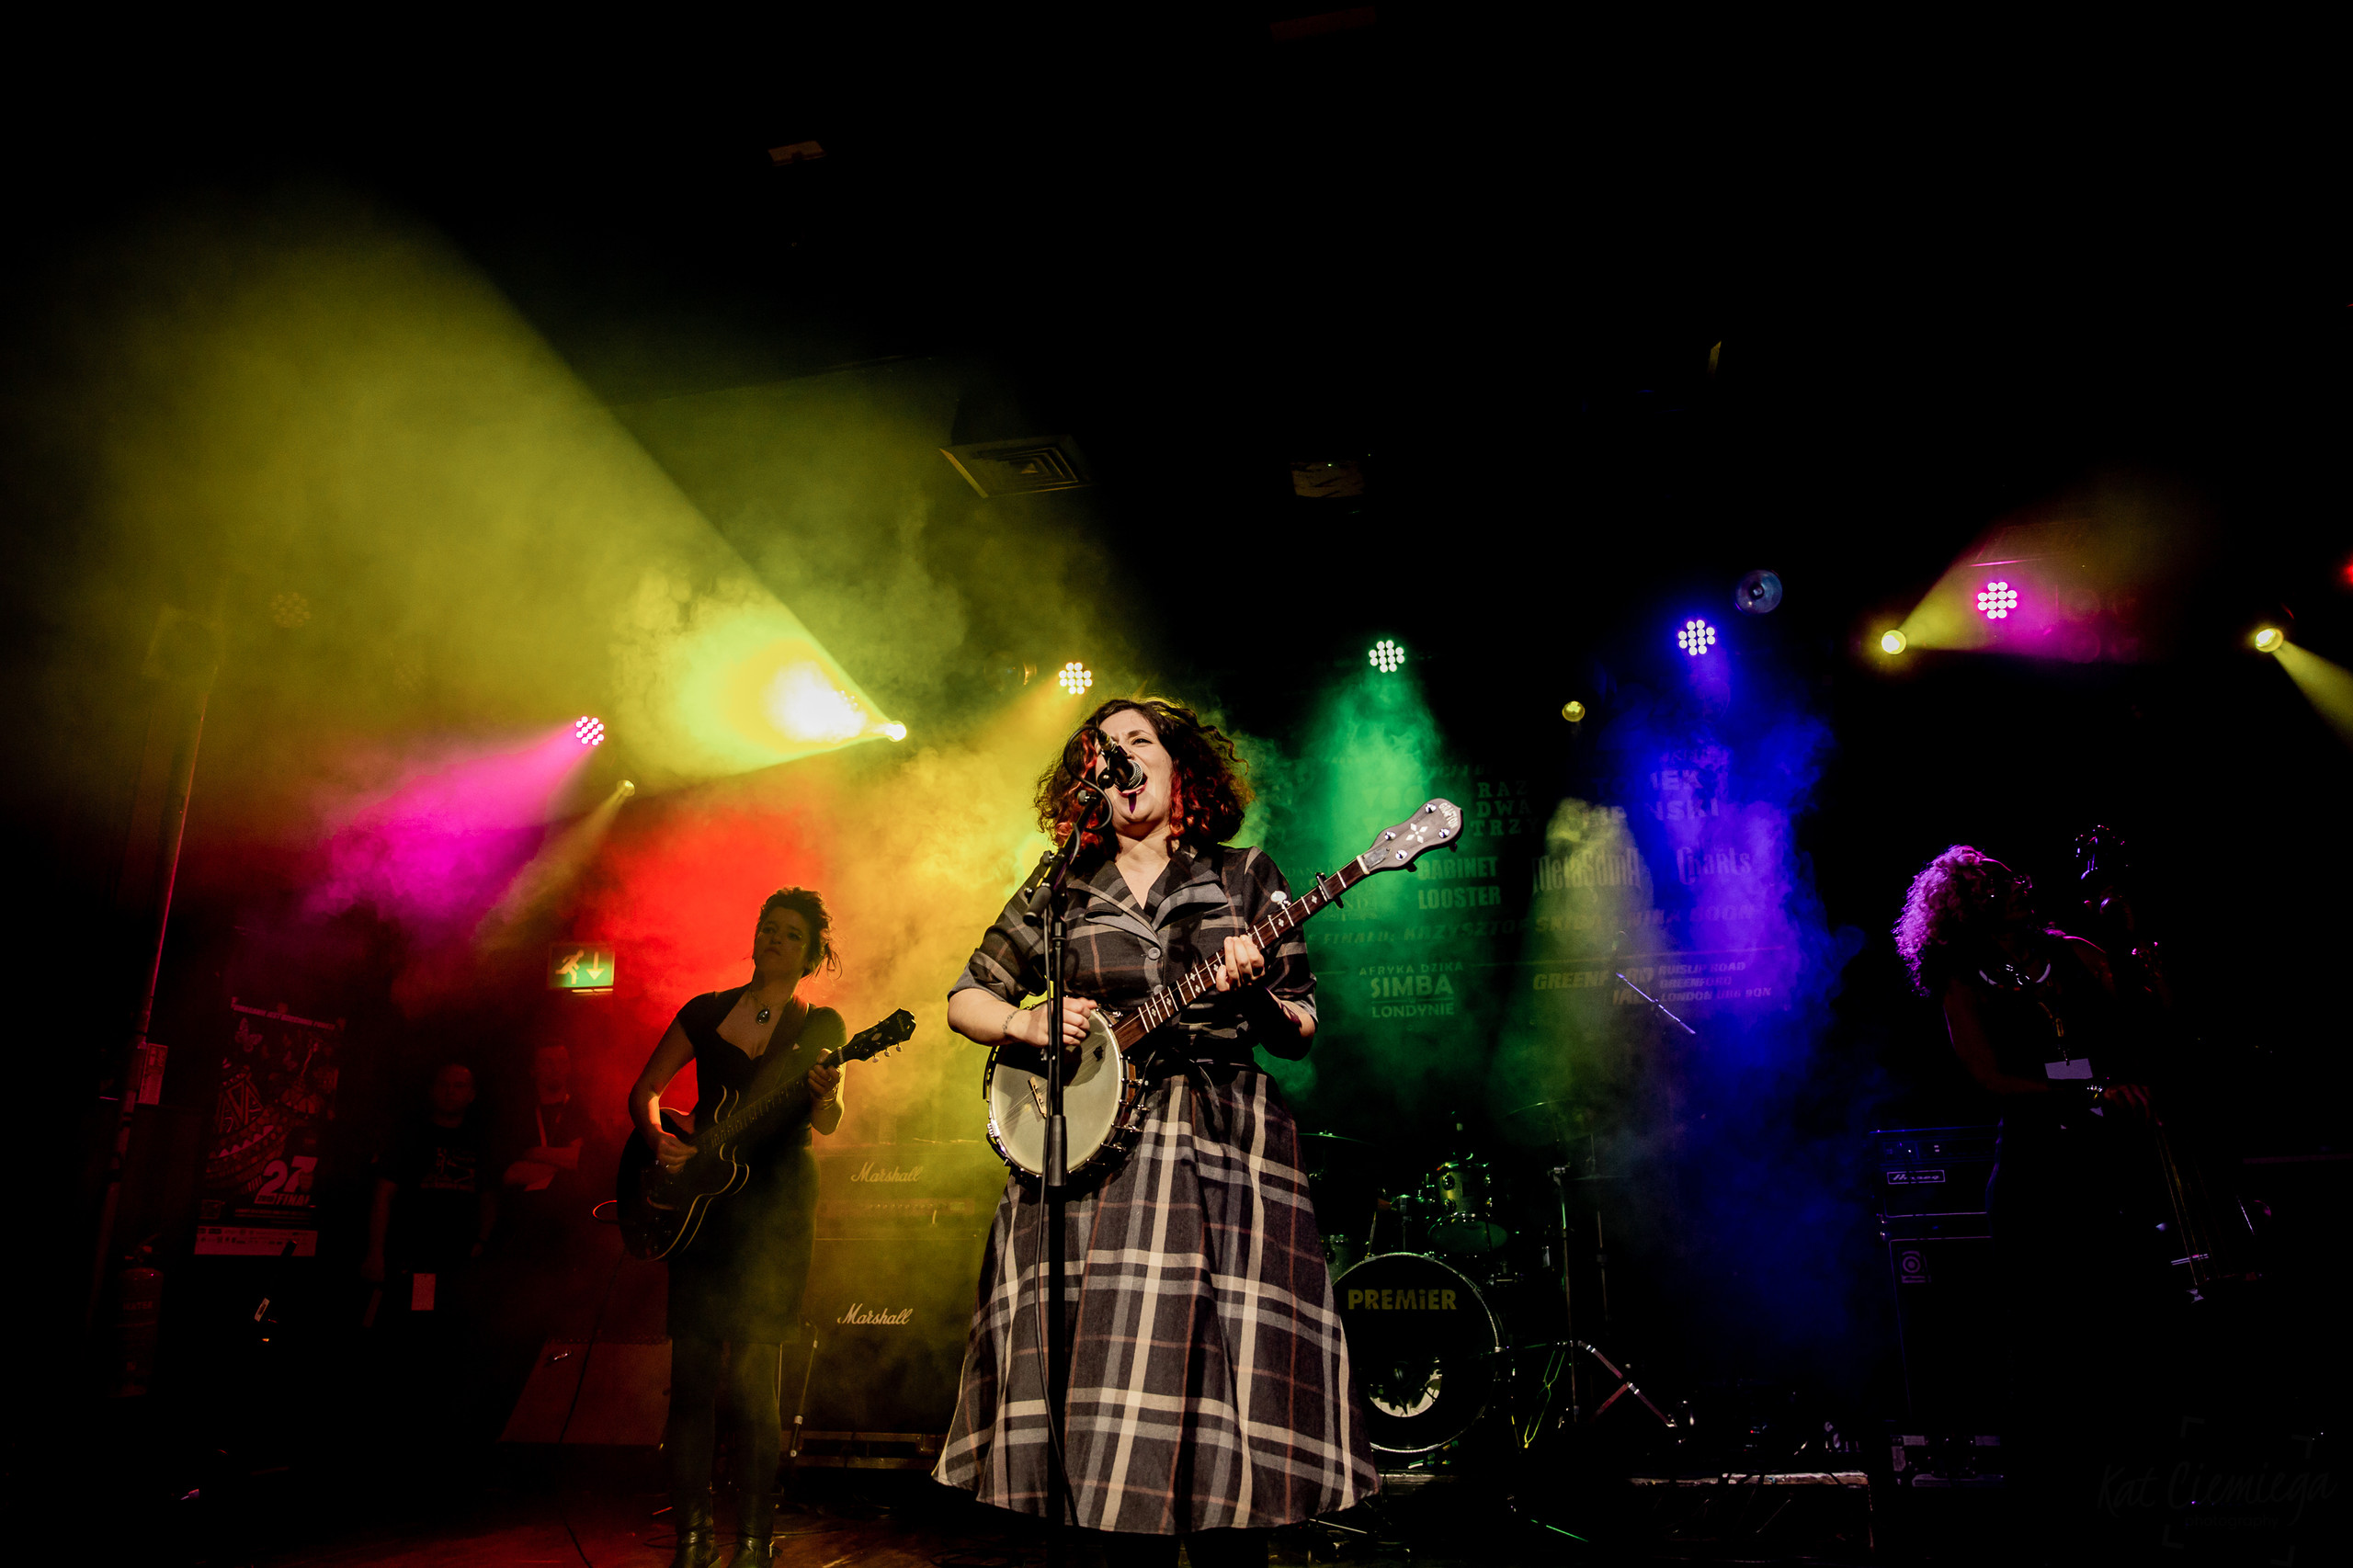 Kat Ciemiega photography, photographer London, events London, WOSP, WOŚP, Scala, Dana Immanuel and the Stolen Band